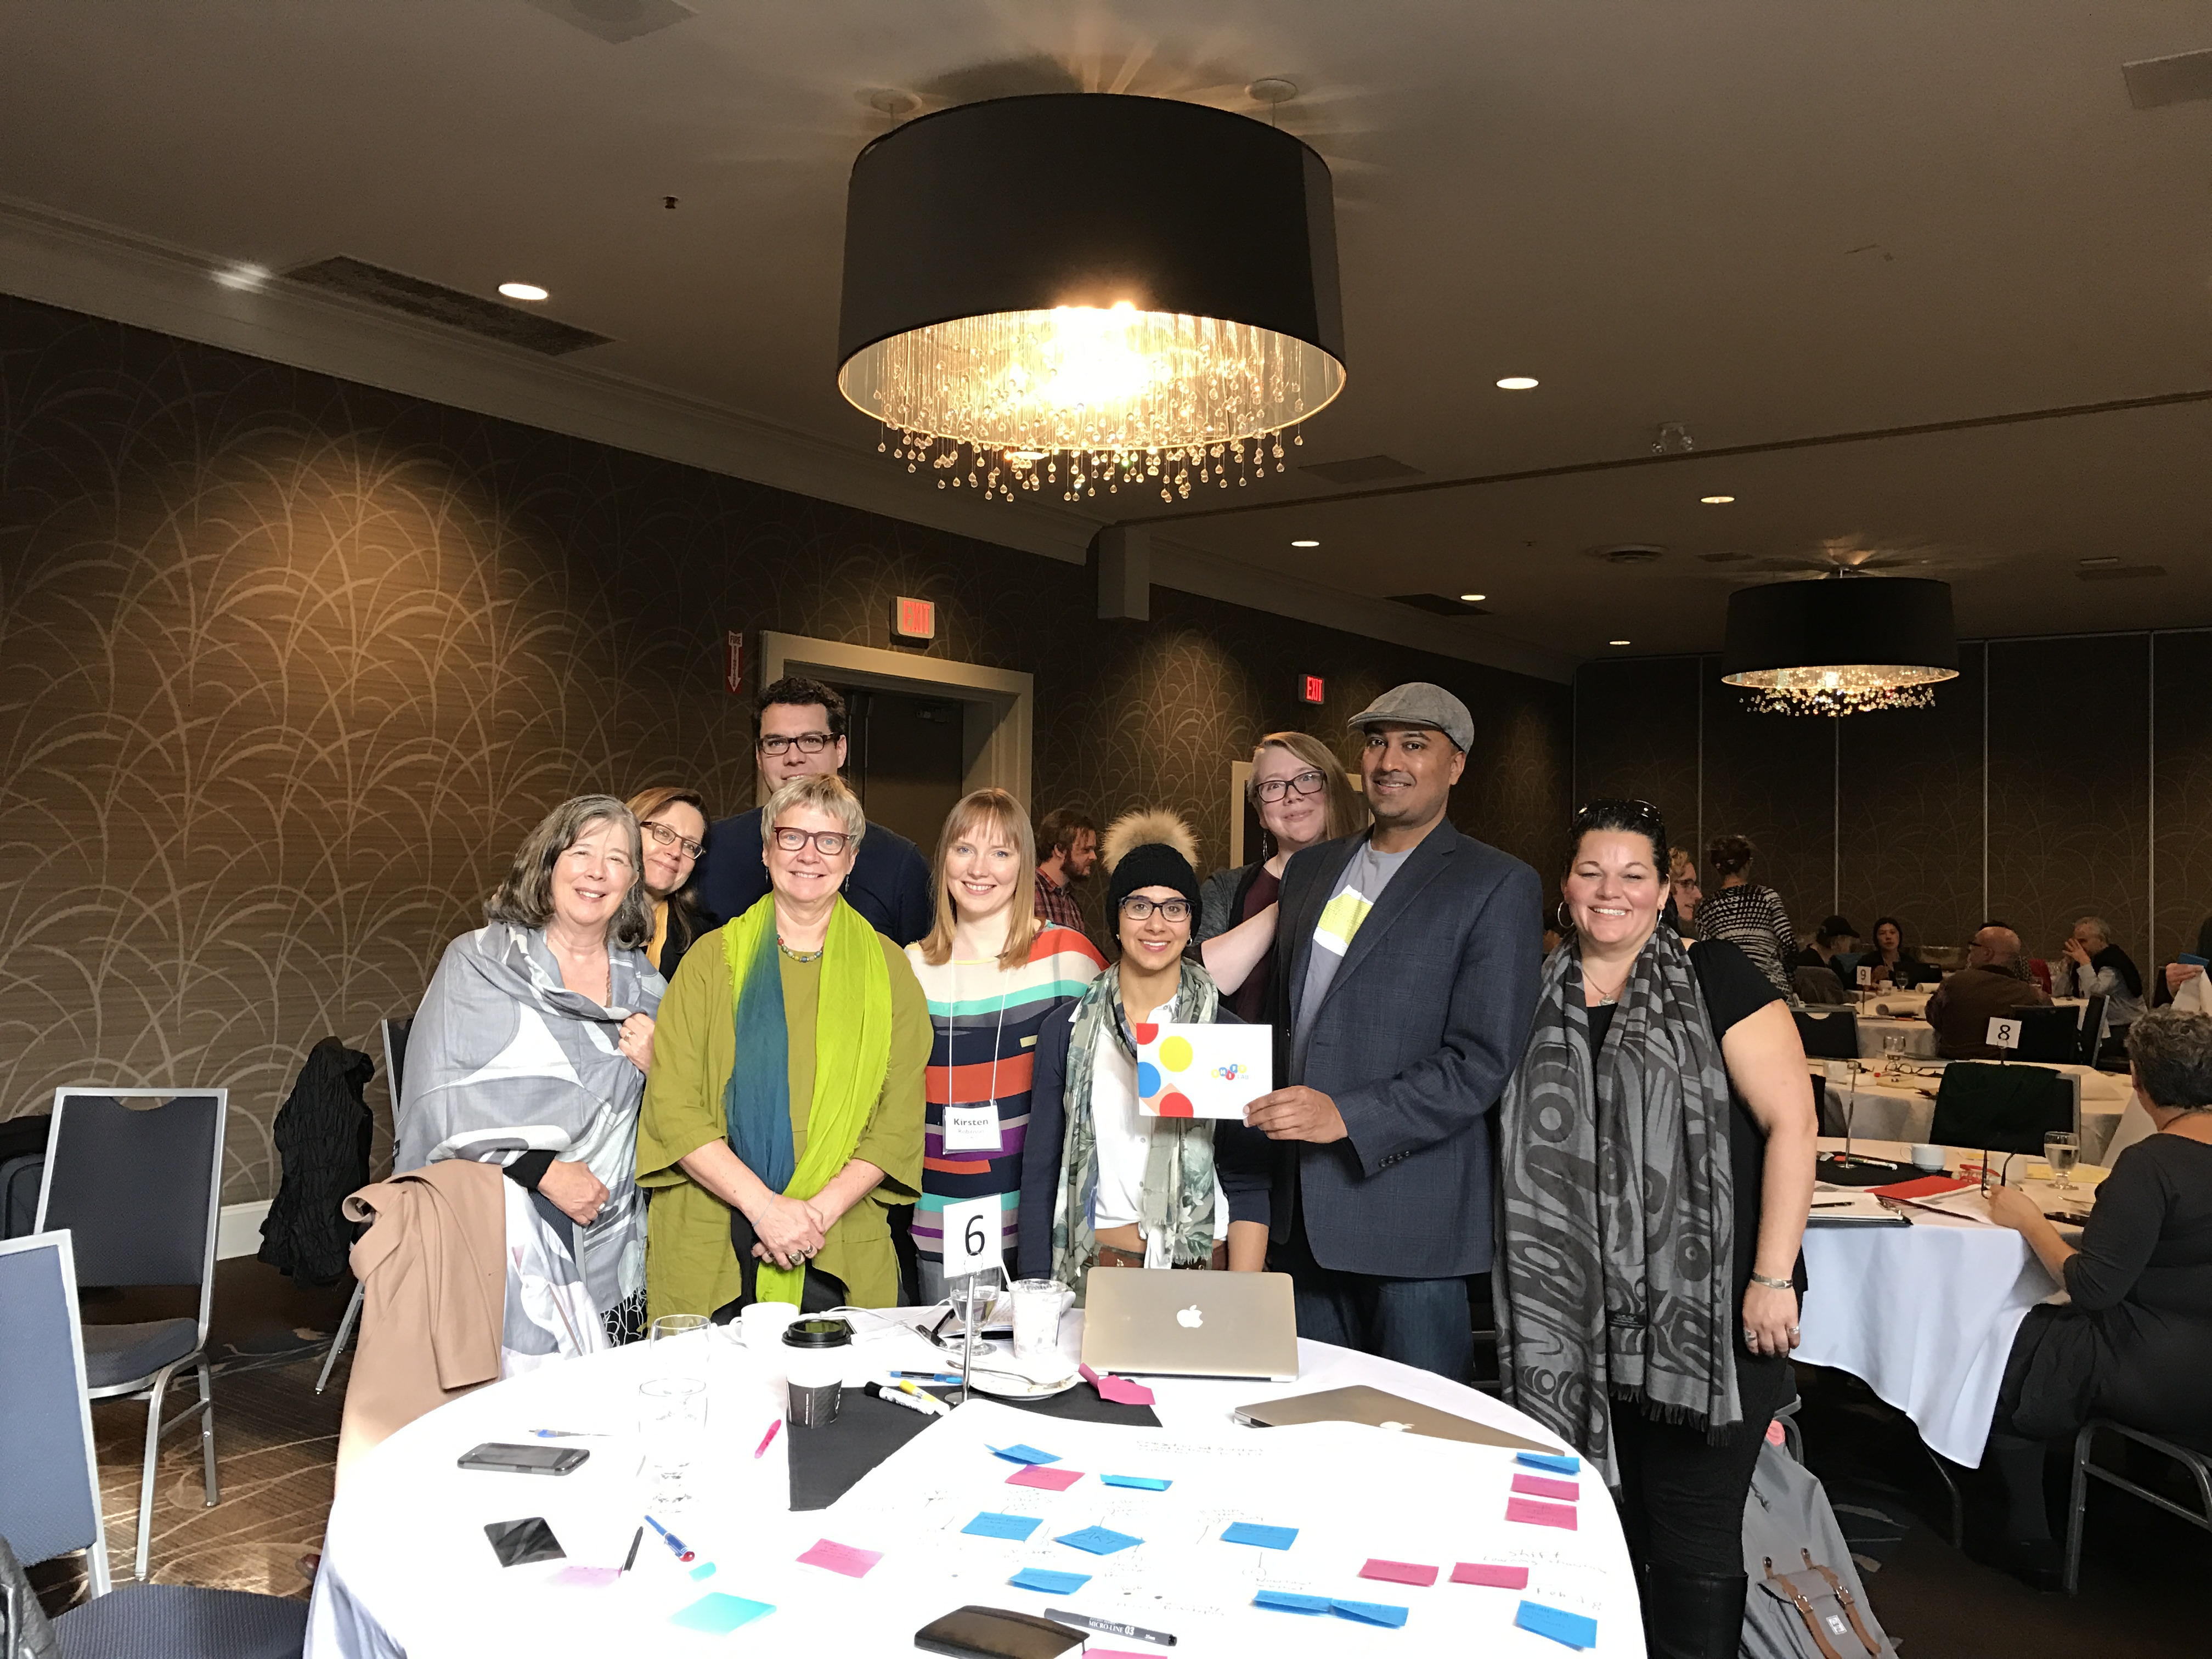 The Shift Lab Stewardship team with Frances Westley, Cheryl Rose, and LabWISE mentors.